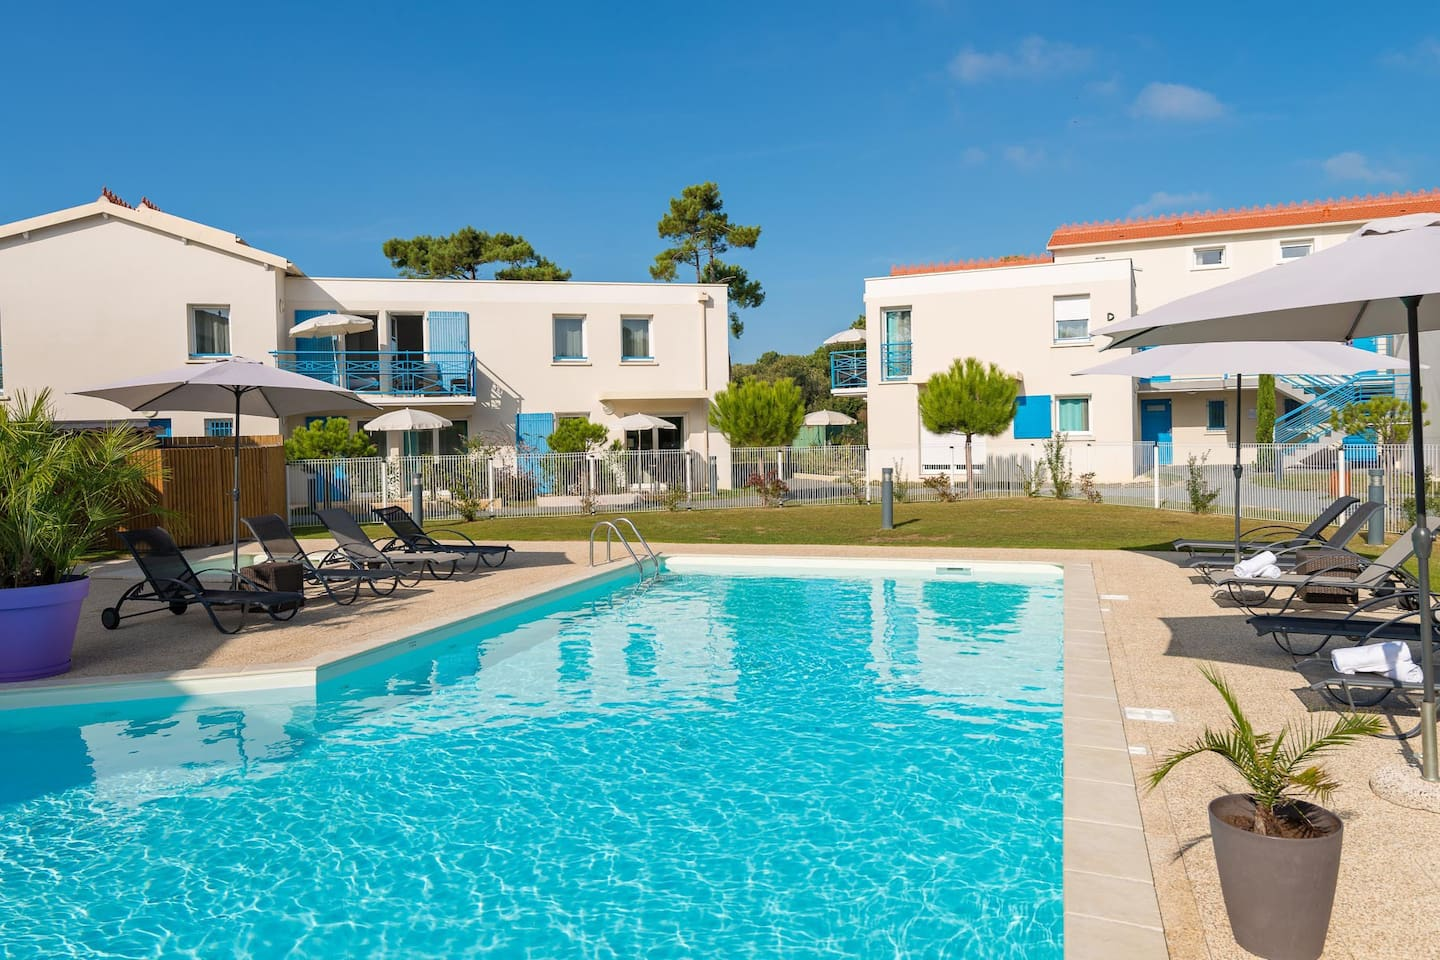 Enjoy the French summer and lounge poolside.